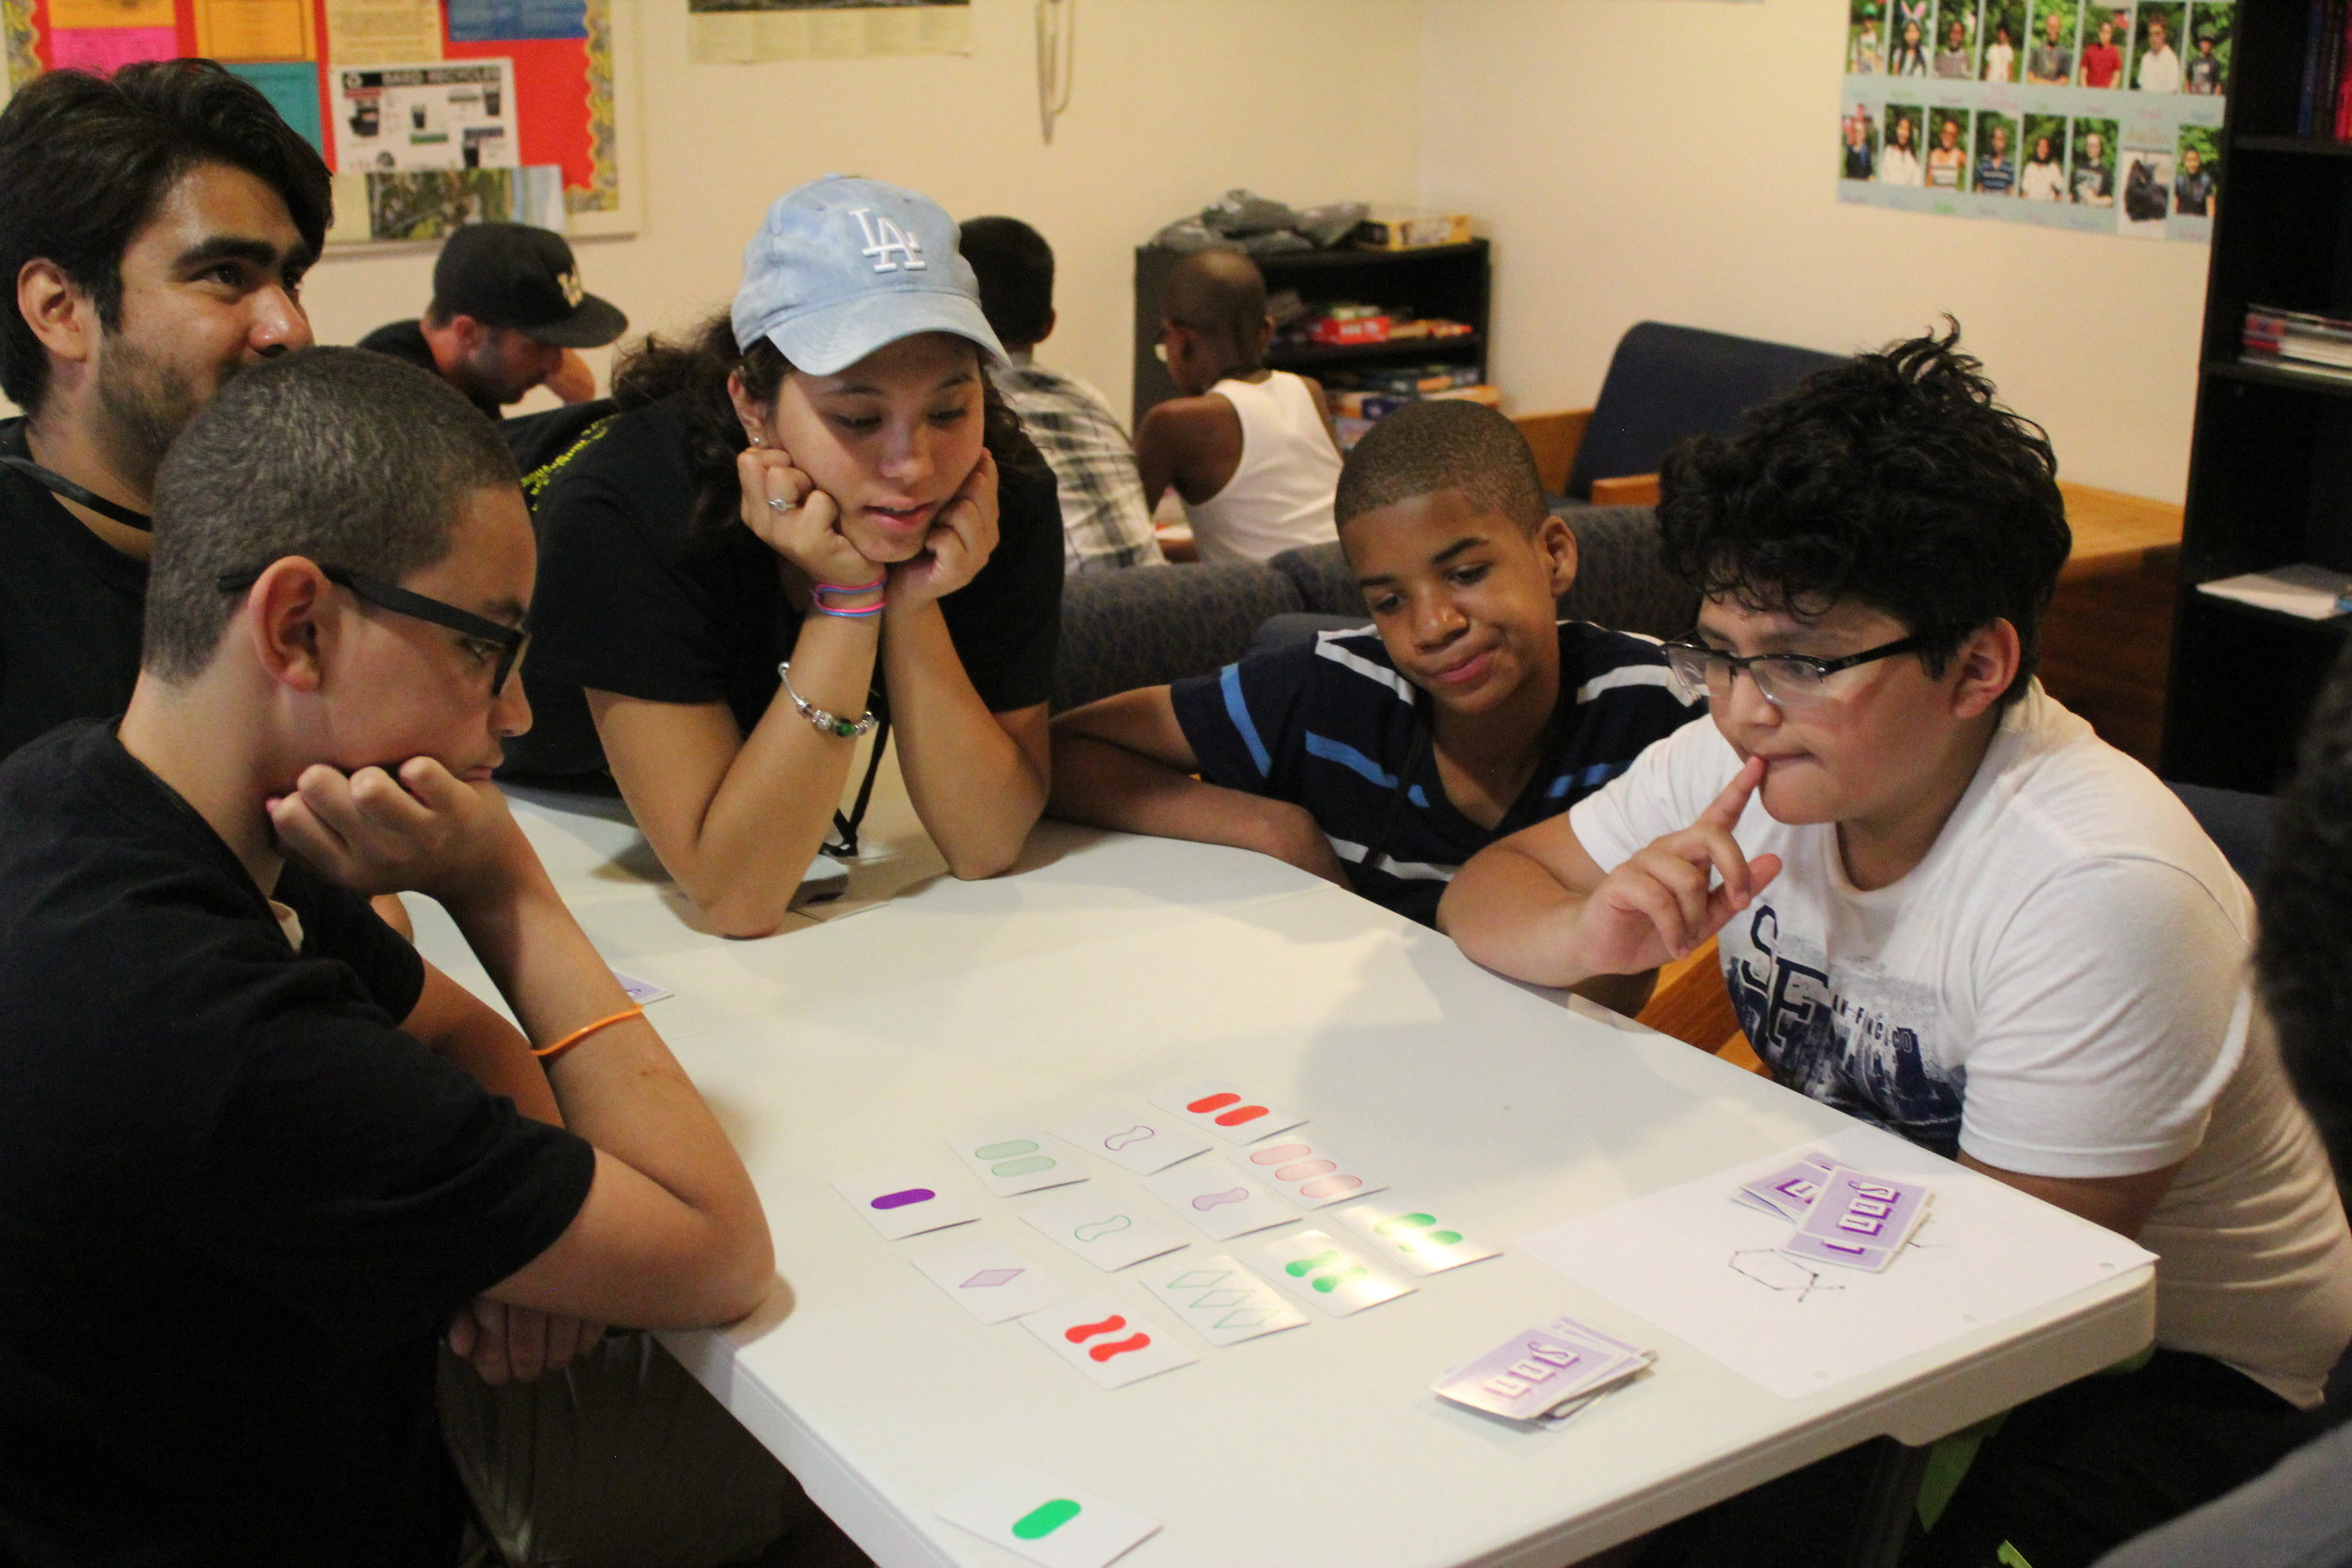 Pictured above: Counselor Kaylynn (middle) and instructor Javier (left of Kaylynn) play Set, a matching game which requires players to recognize patterns in a set of cards, with students Jack, Storm, and Seb.